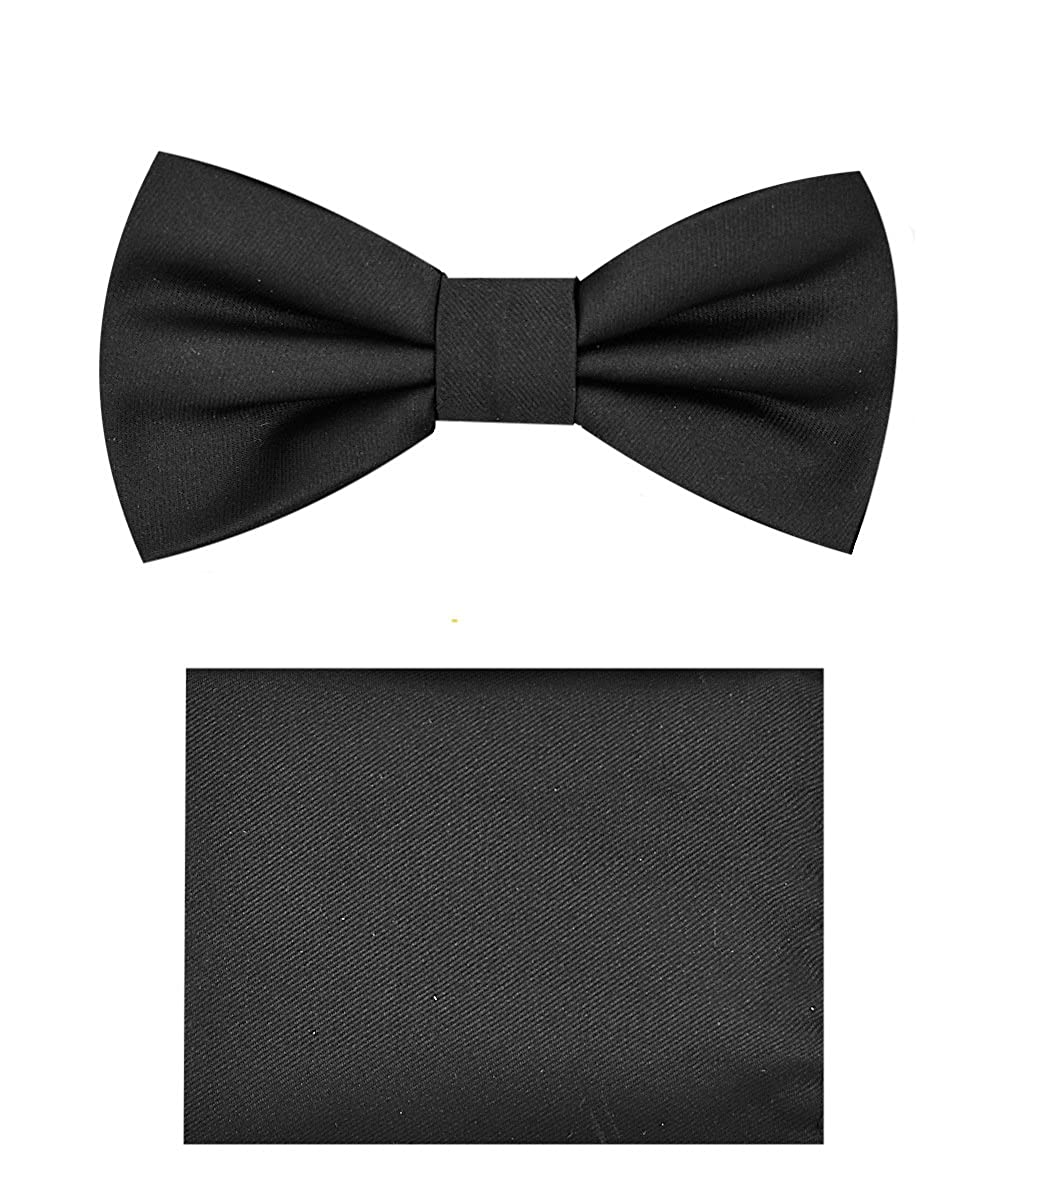 3fb9d42e3d9a2 Amazon.com: Boys Bow Tie Handkerchief Set (Black)-B: Clothing